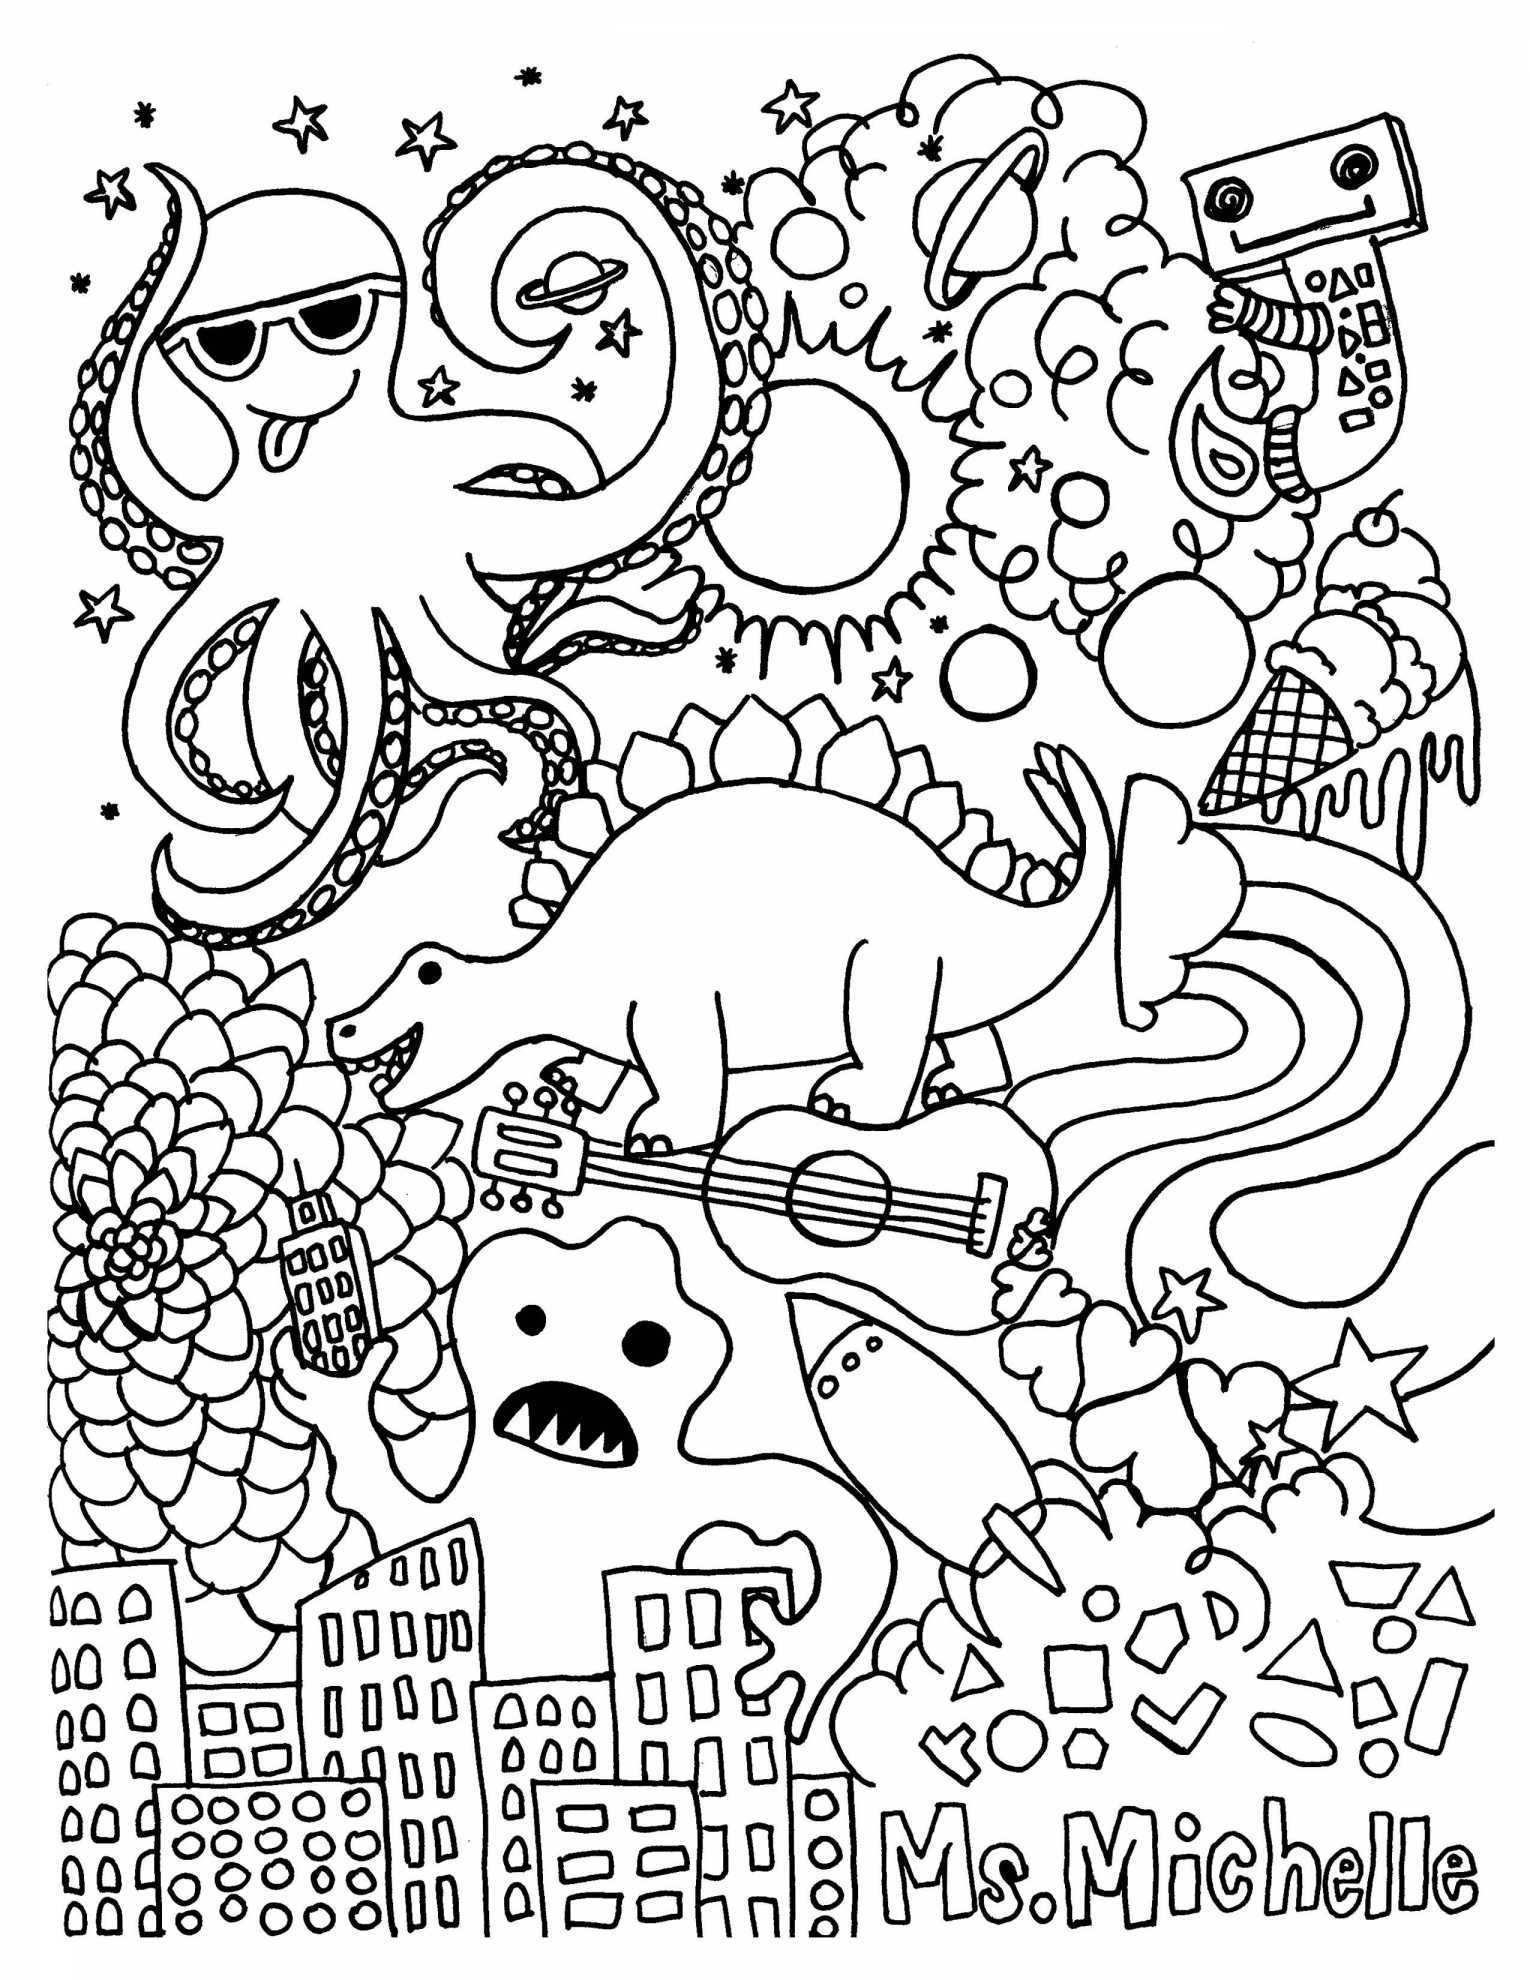 Mayflower Coloring Page Mayflower Coloring Pages Pinterest Dice Games And Plasticulture